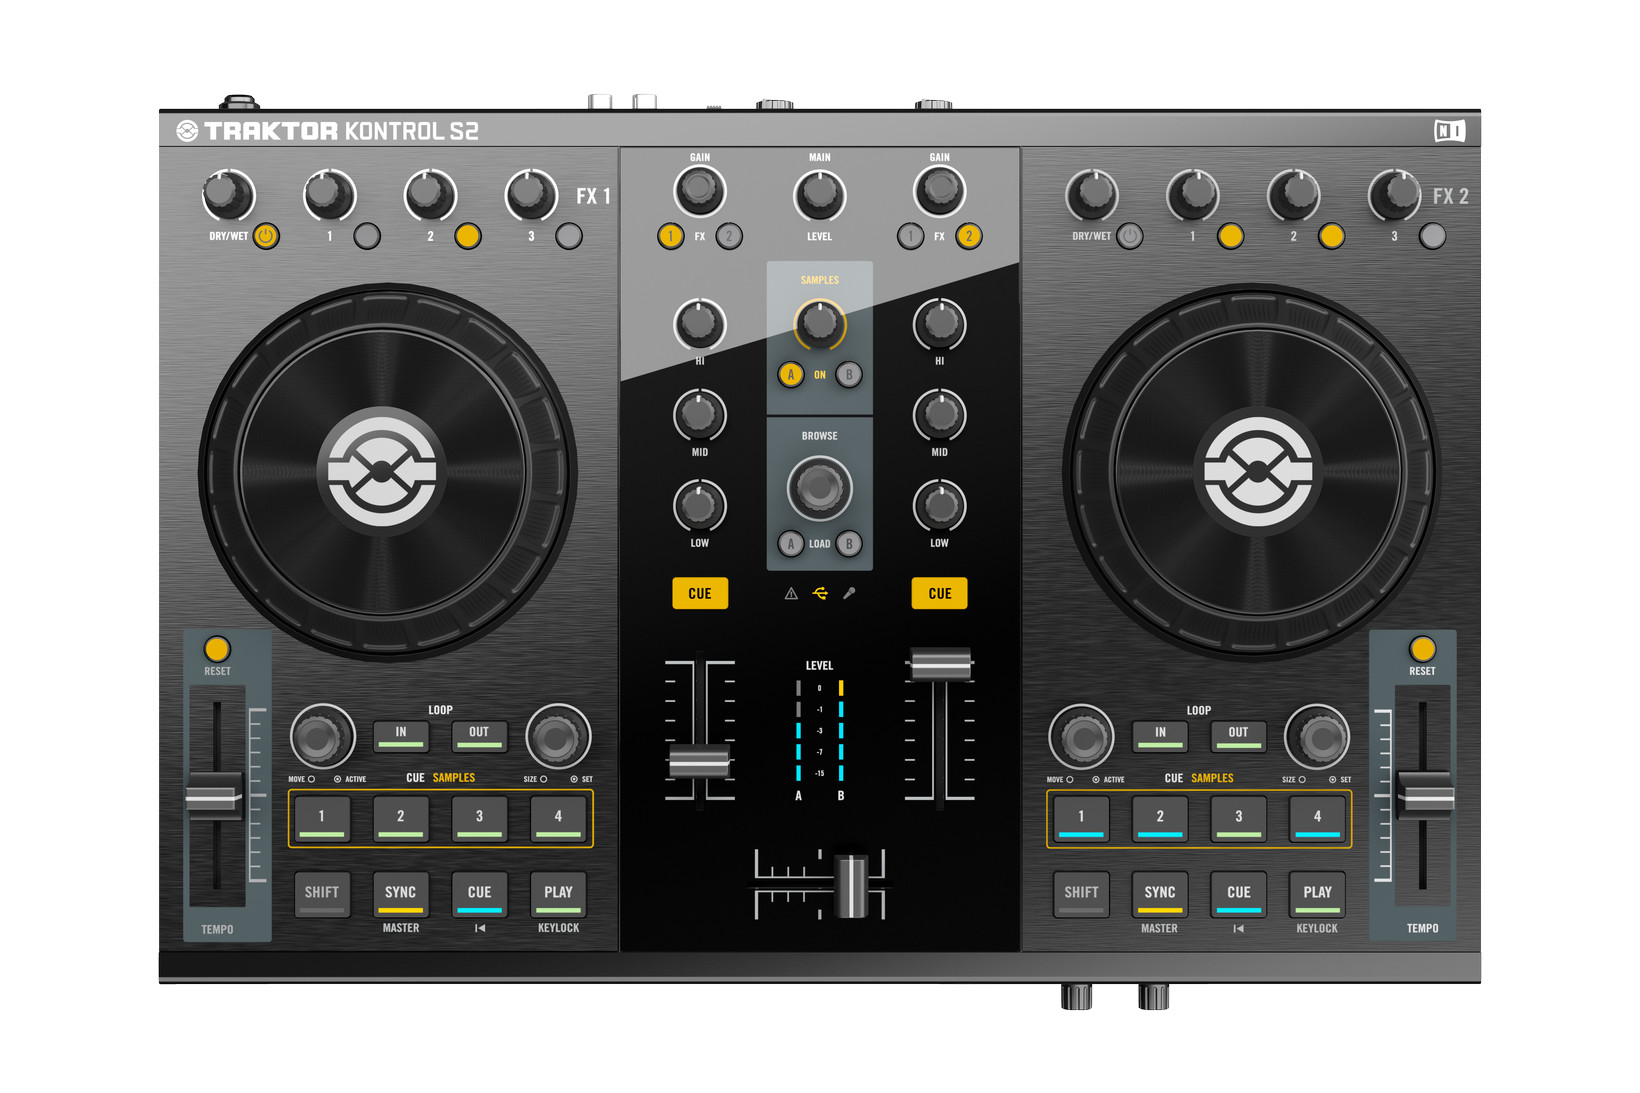 Smaller, lighter, more streamlined... the Traktor Kontrol S2 is the little brother to the popular Kontrol S2. Does it offer better value, though?